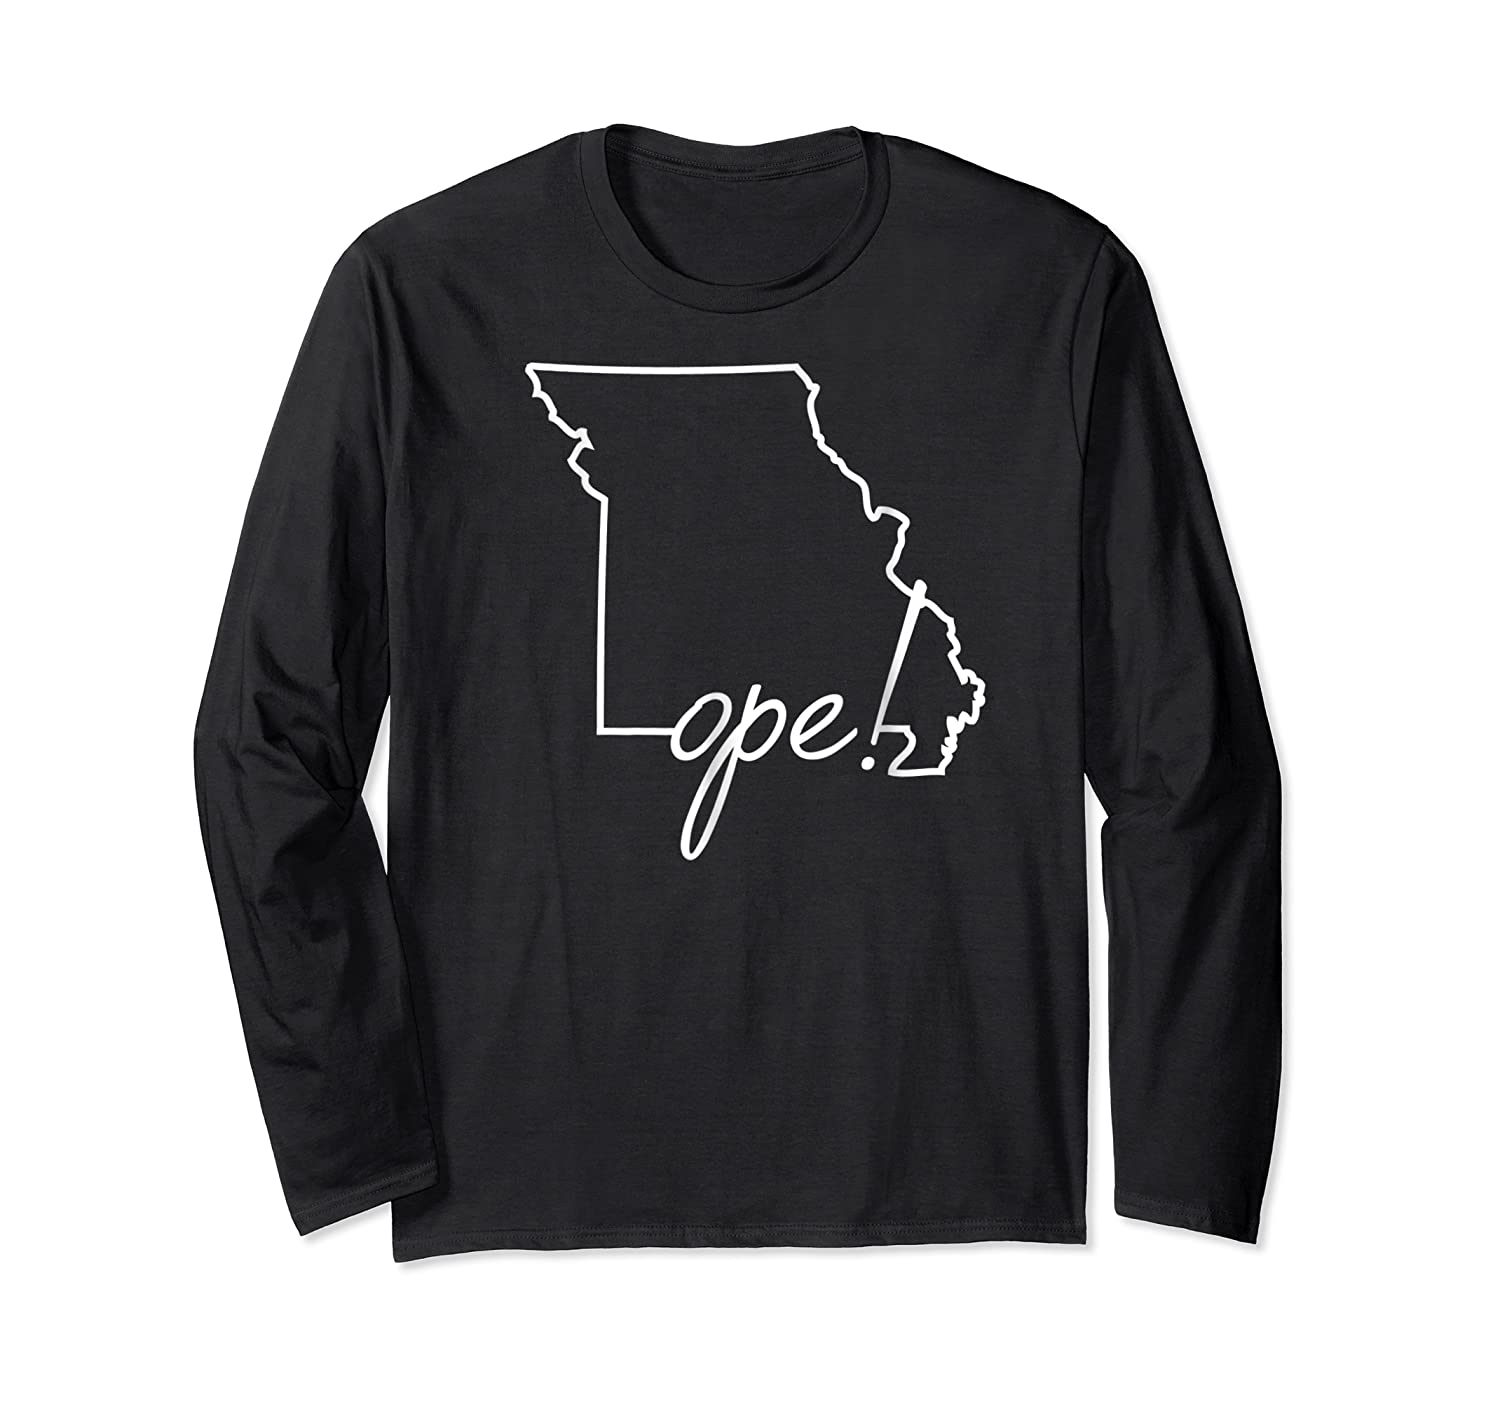 Ope Missouri Shirt Funny Midwest Culture Phrase Saying Gift Long Sleeve T-shirt